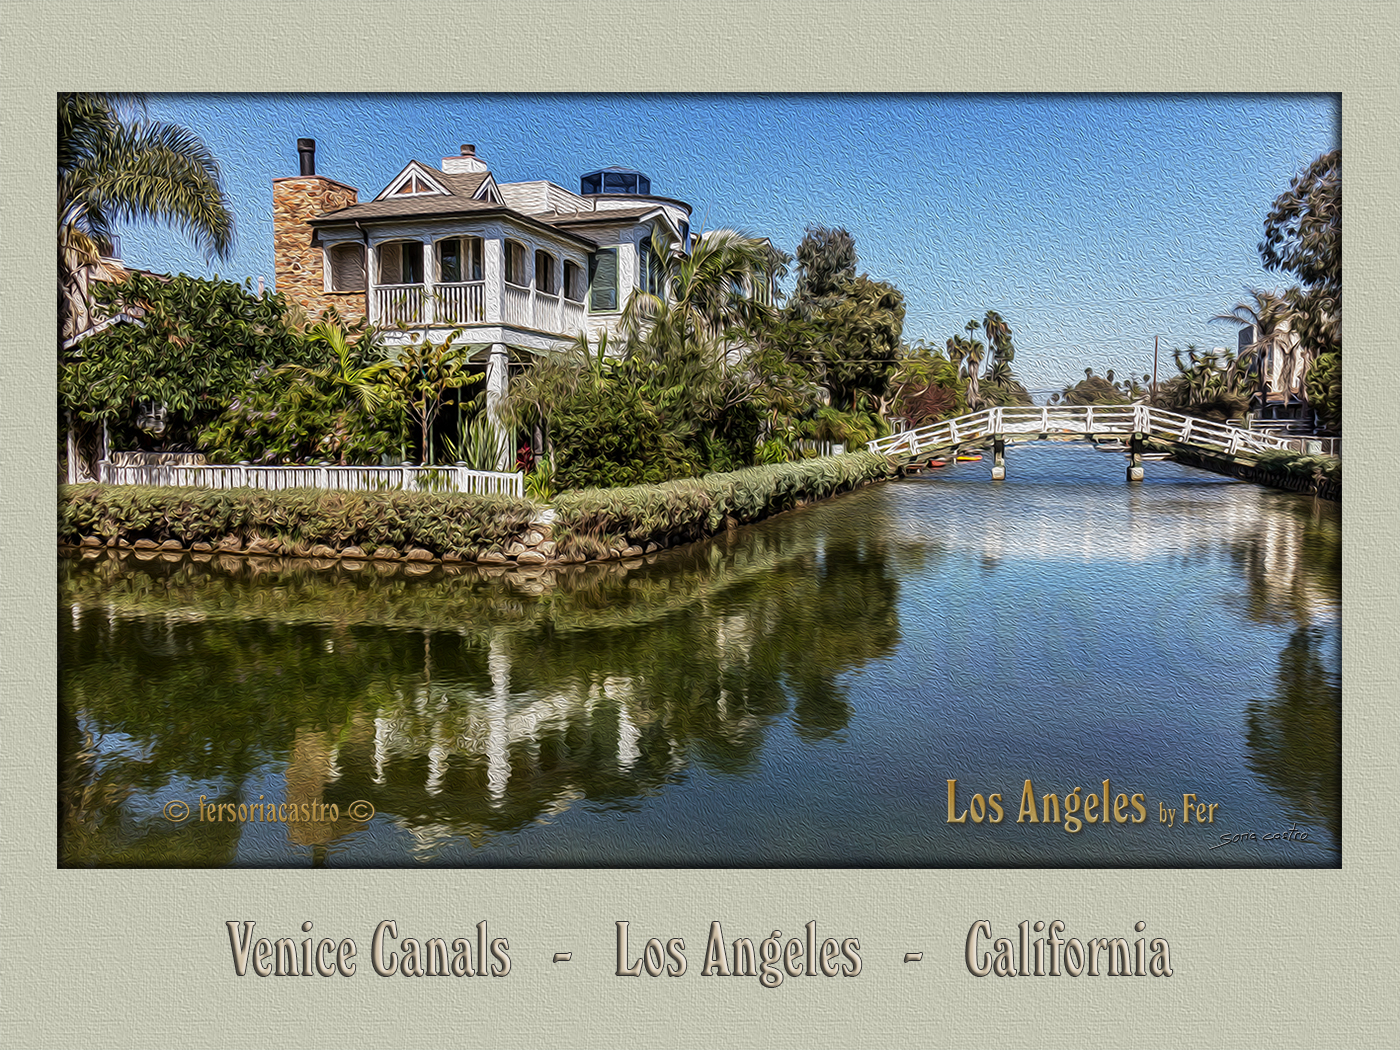 Venice Canals   -   Los Angeles   -   California